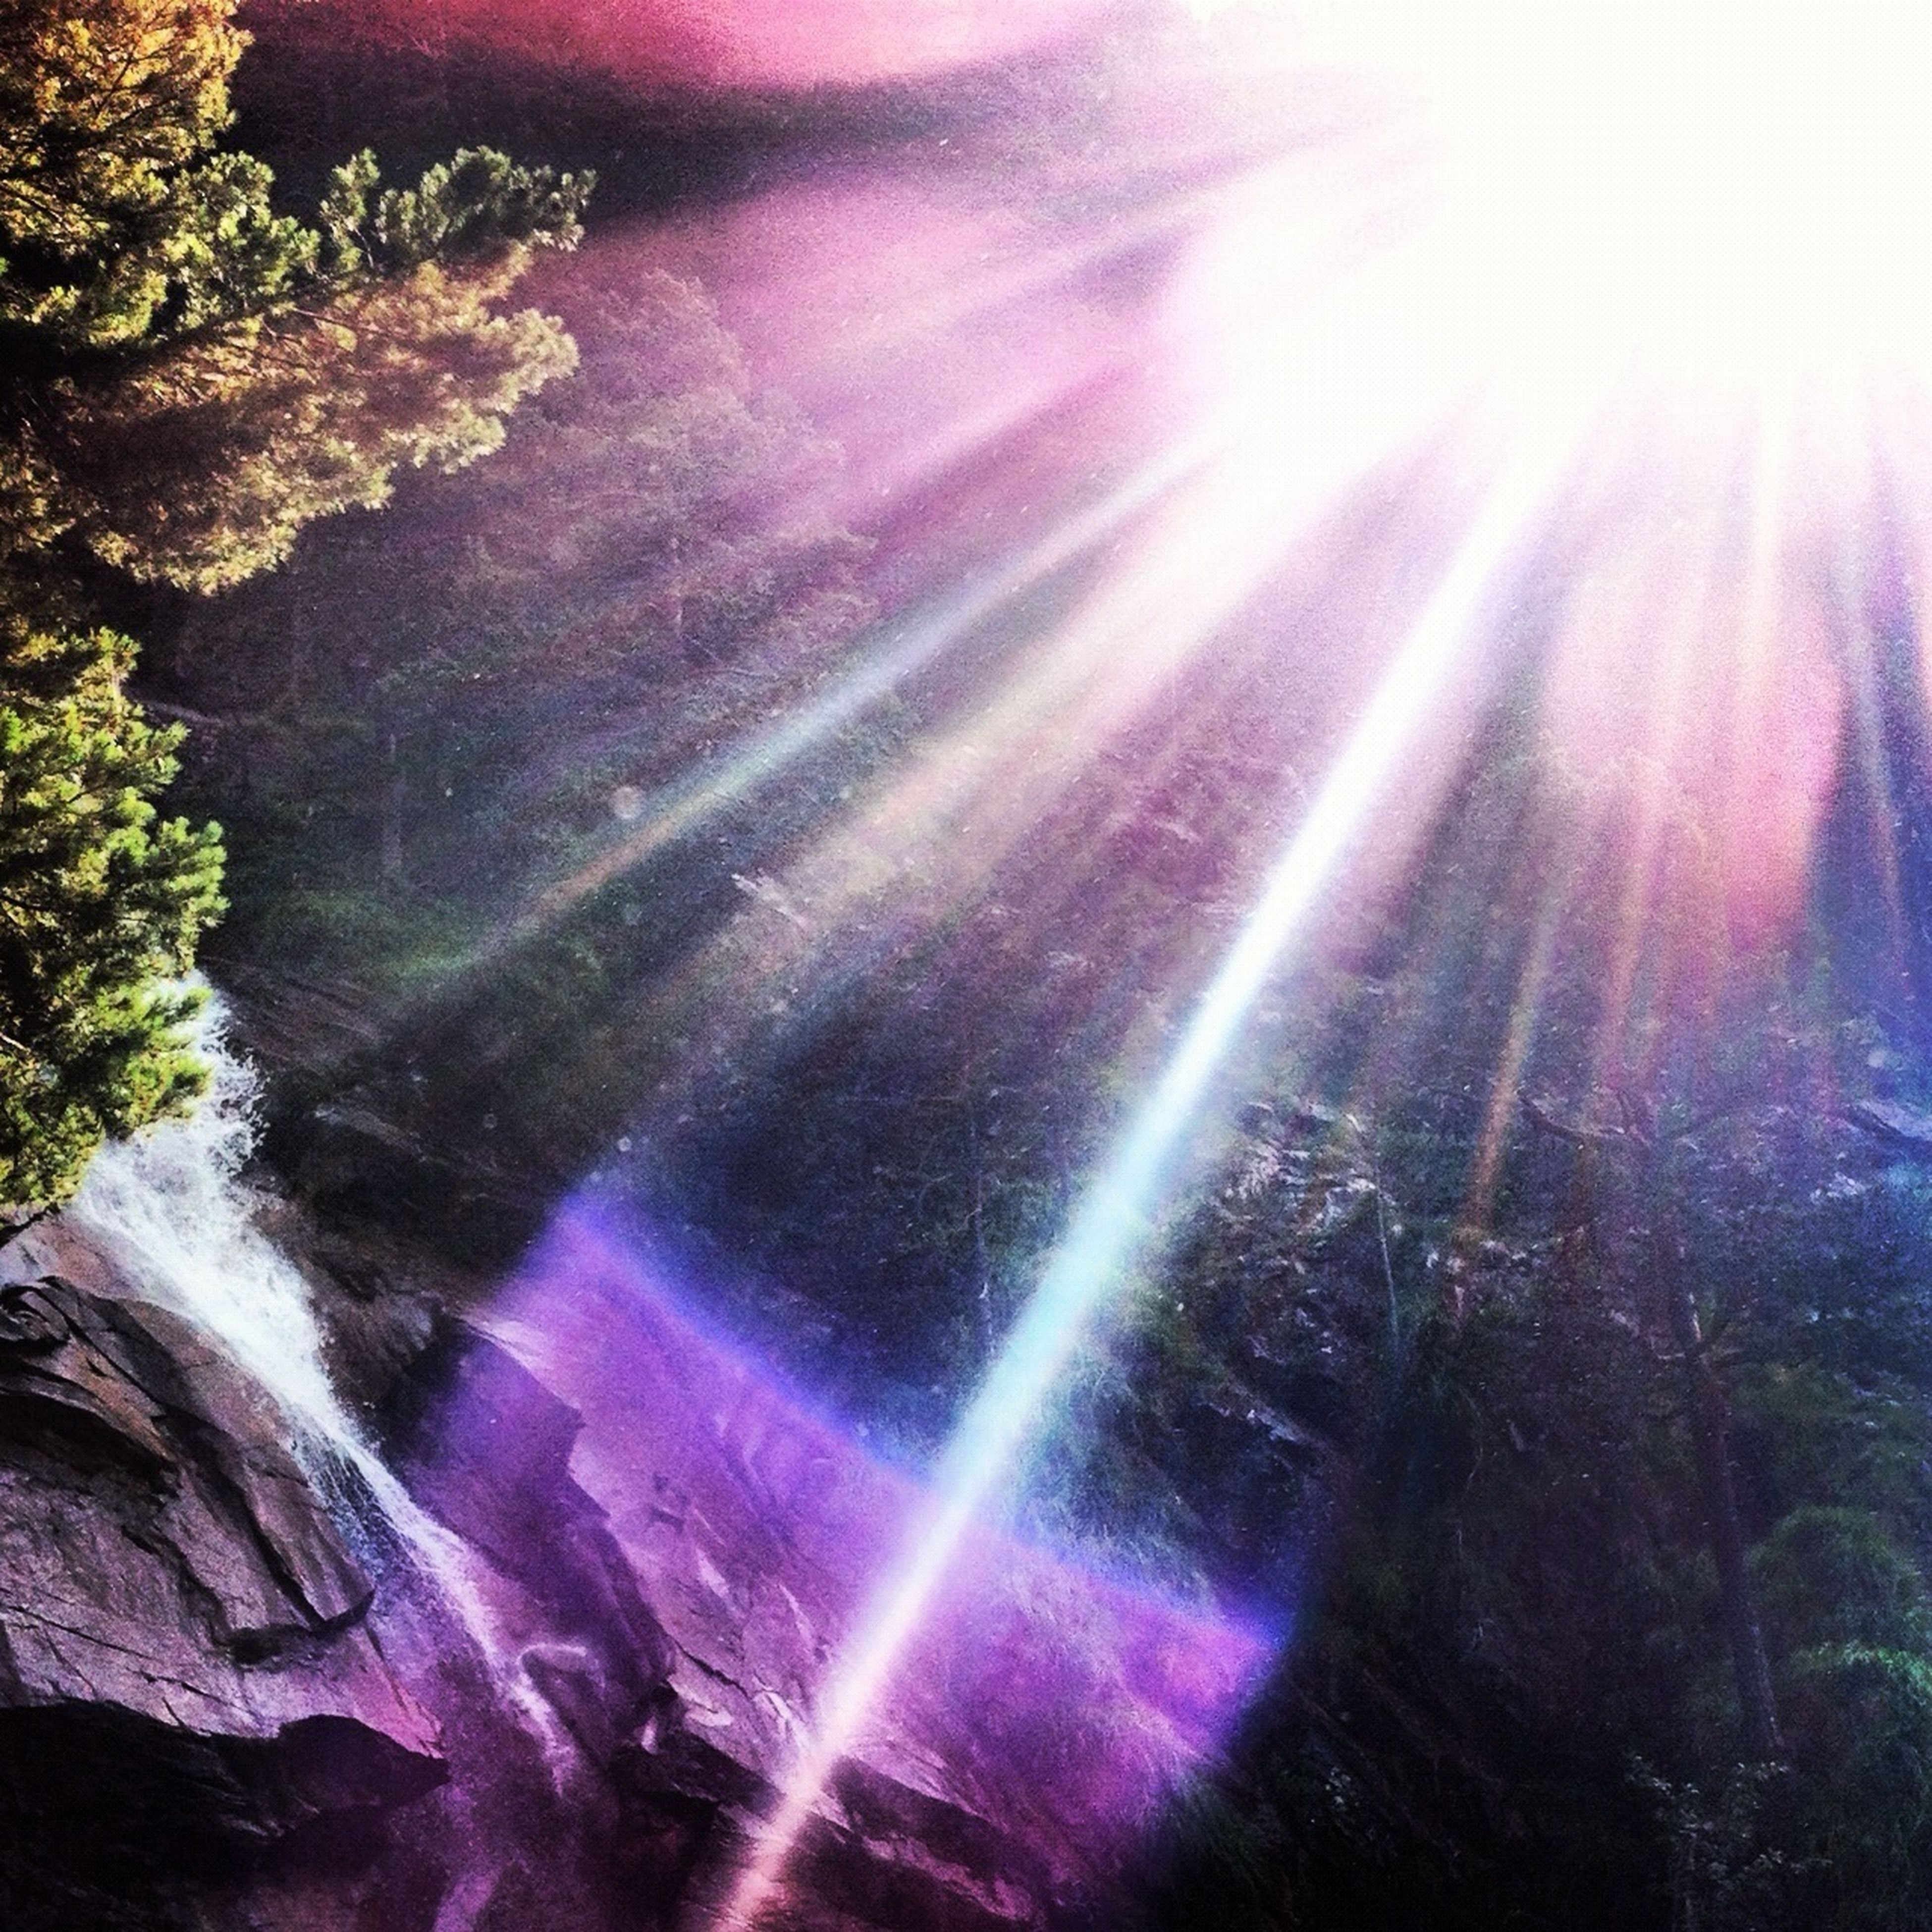 beauty in nature, sunbeam, lens flare, sunlight, nature, sun, multi colored, backgrounds, outdoors, glowing, no people, tranquility, scenics, full frame, low angle view, tranquil scene, day, pink color, motion, bright